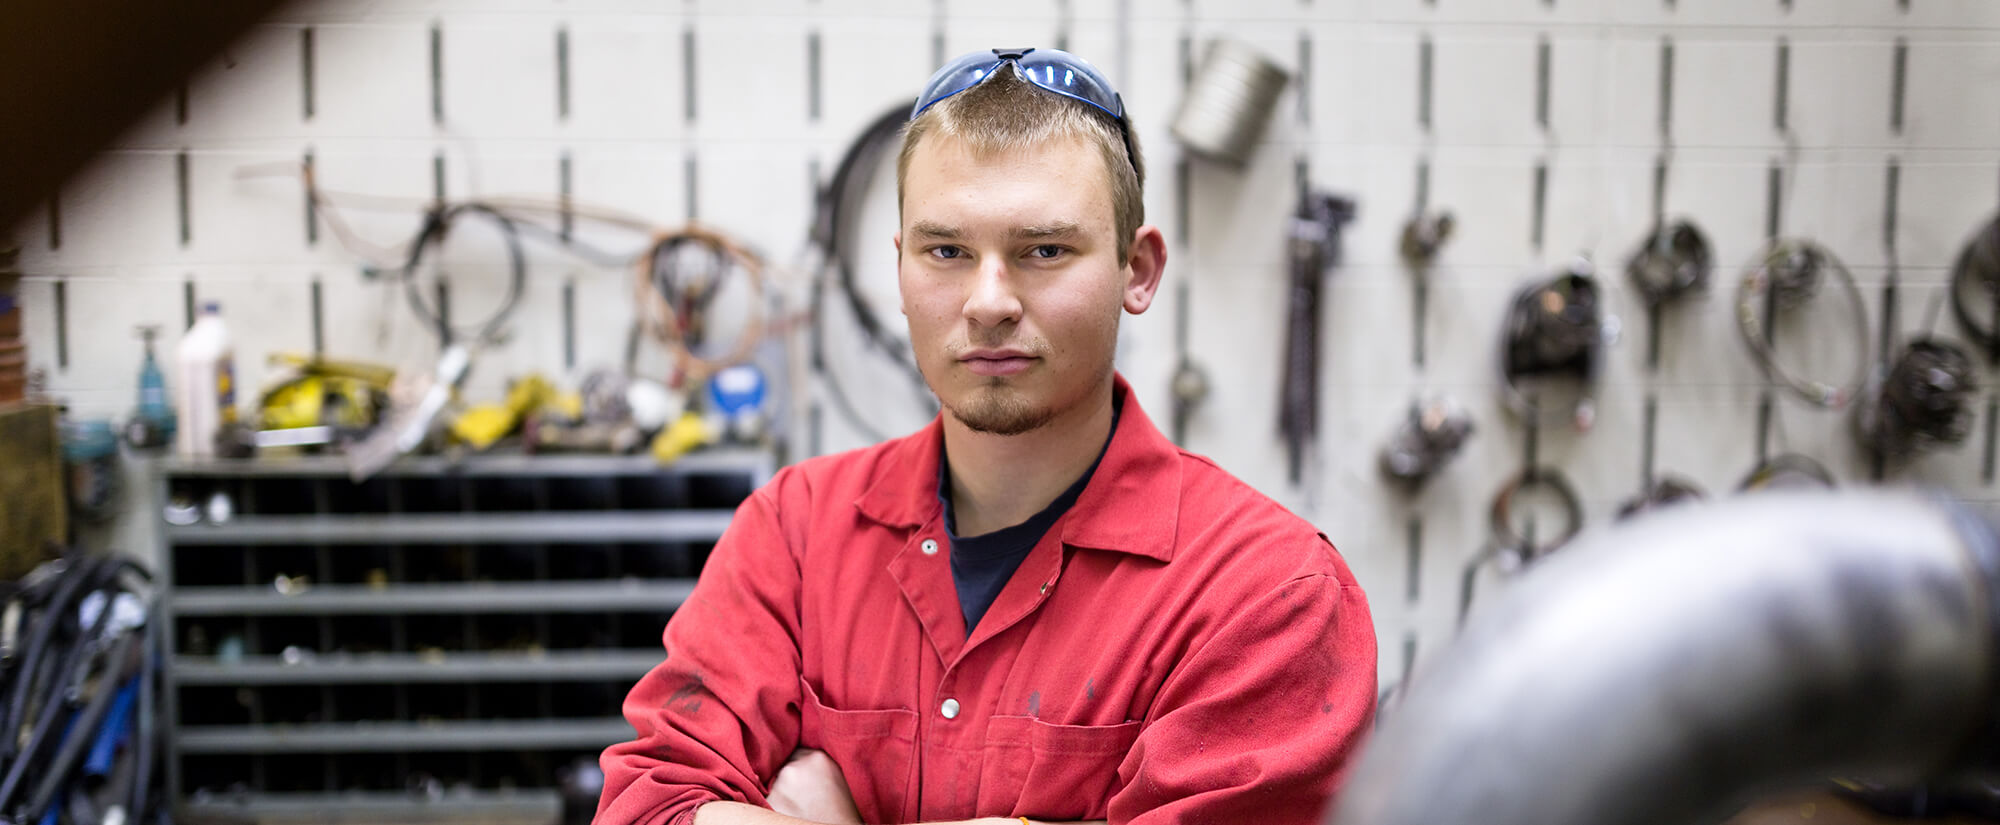 Casper College student poses in a workspace with diesel tools.